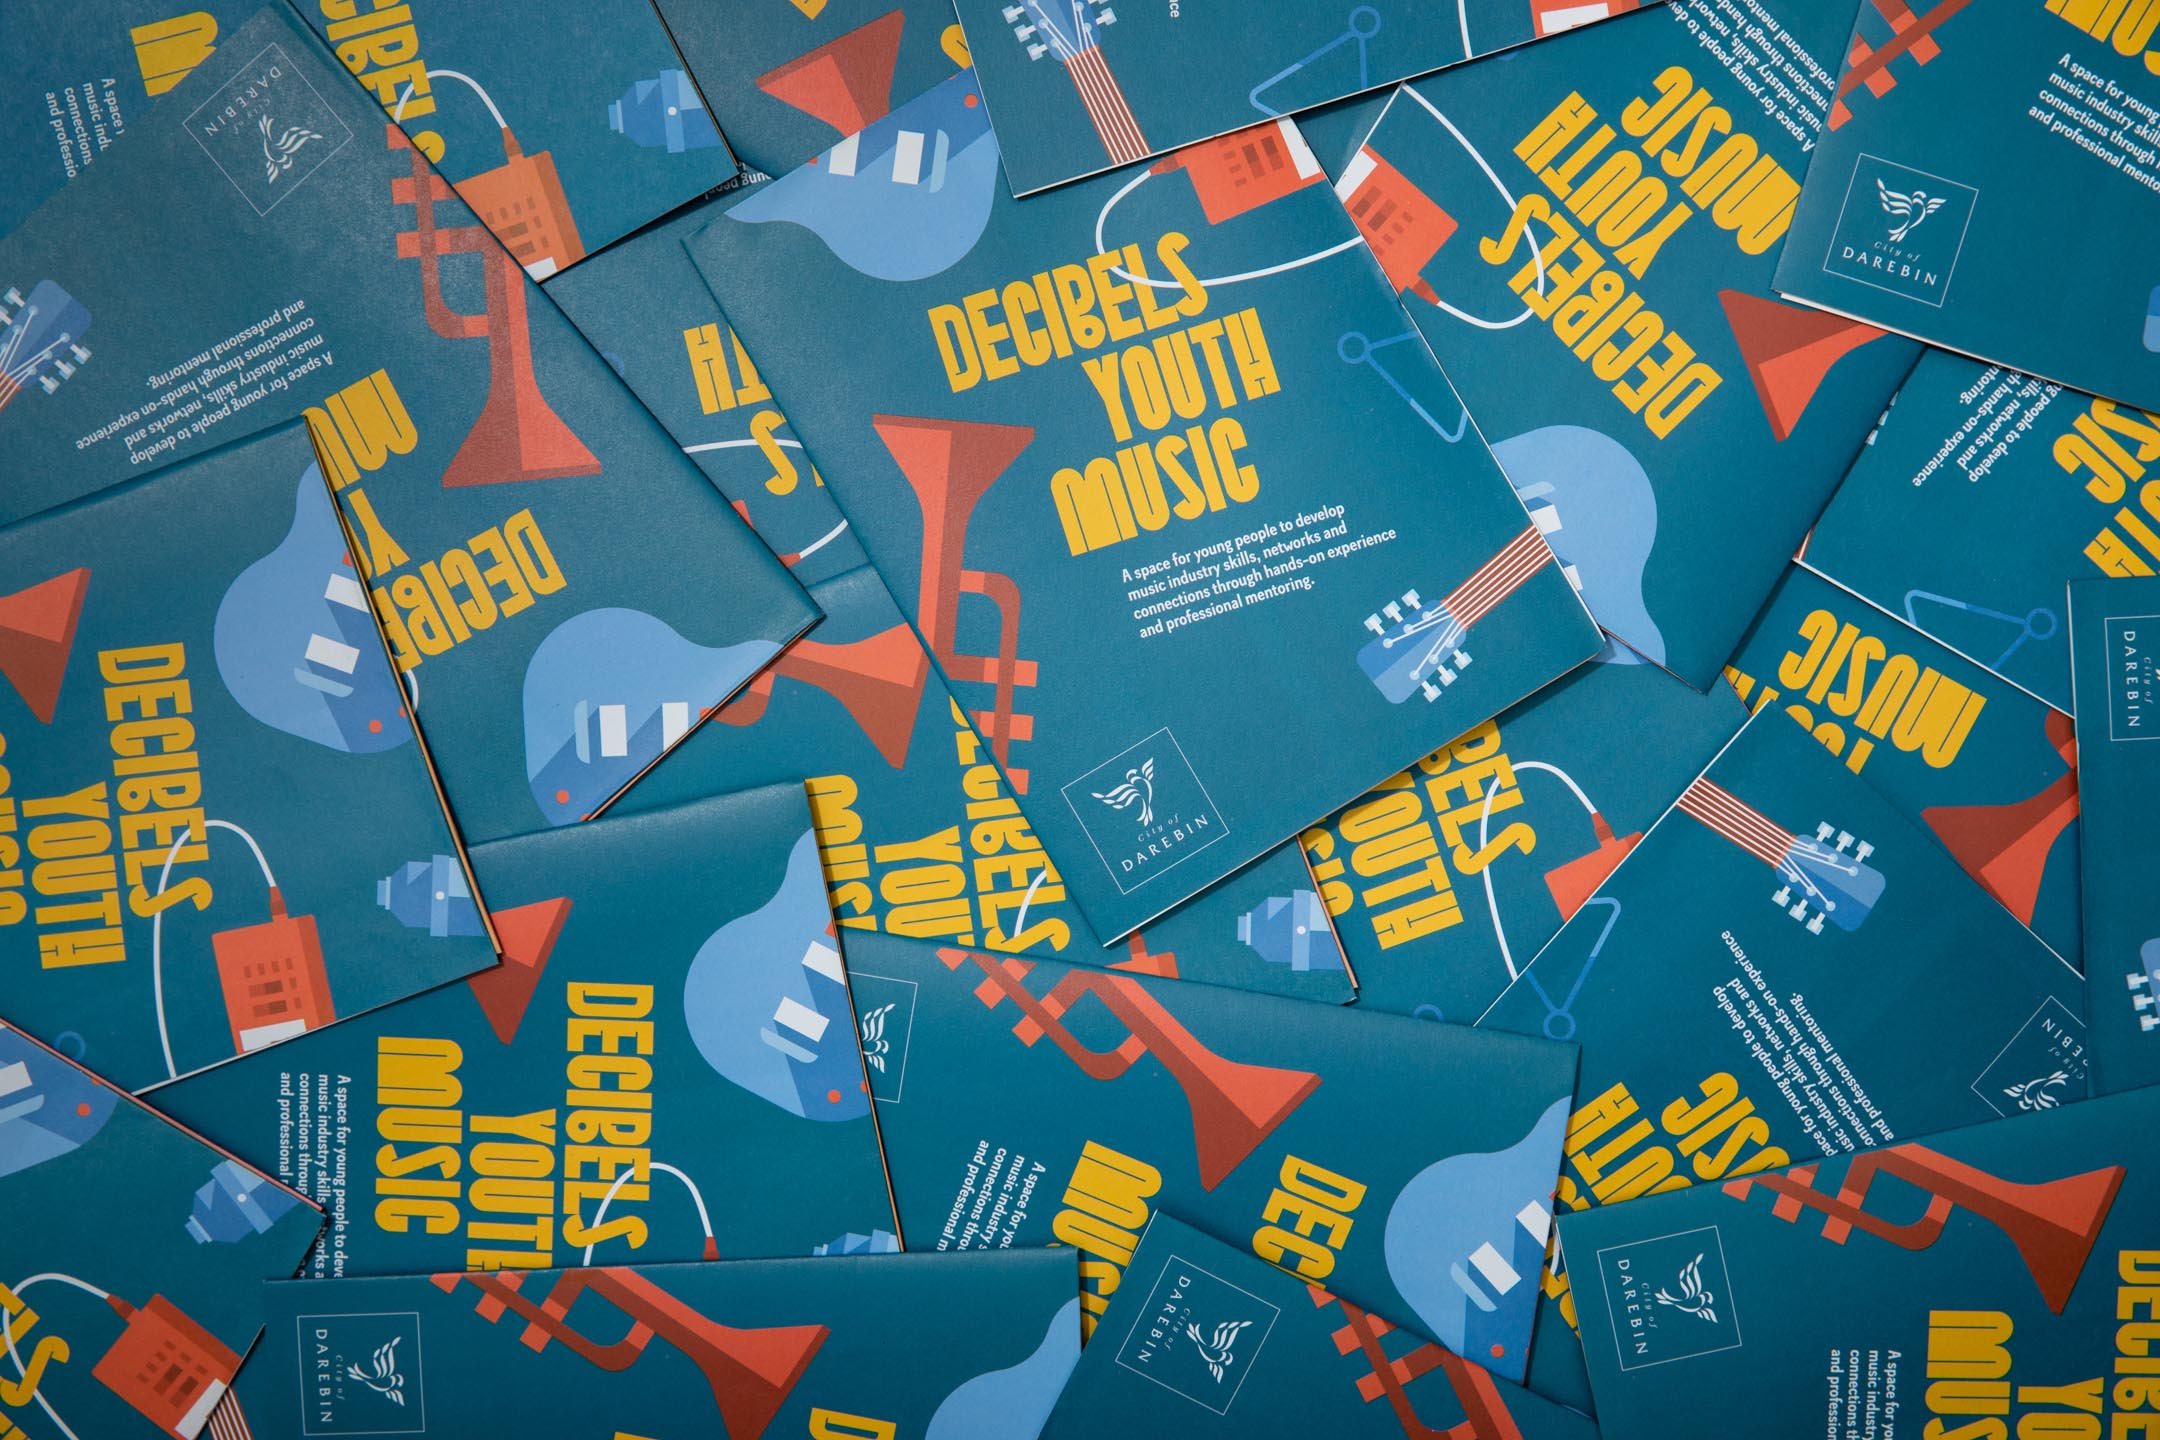 public-journal-decibels-youth-music-1